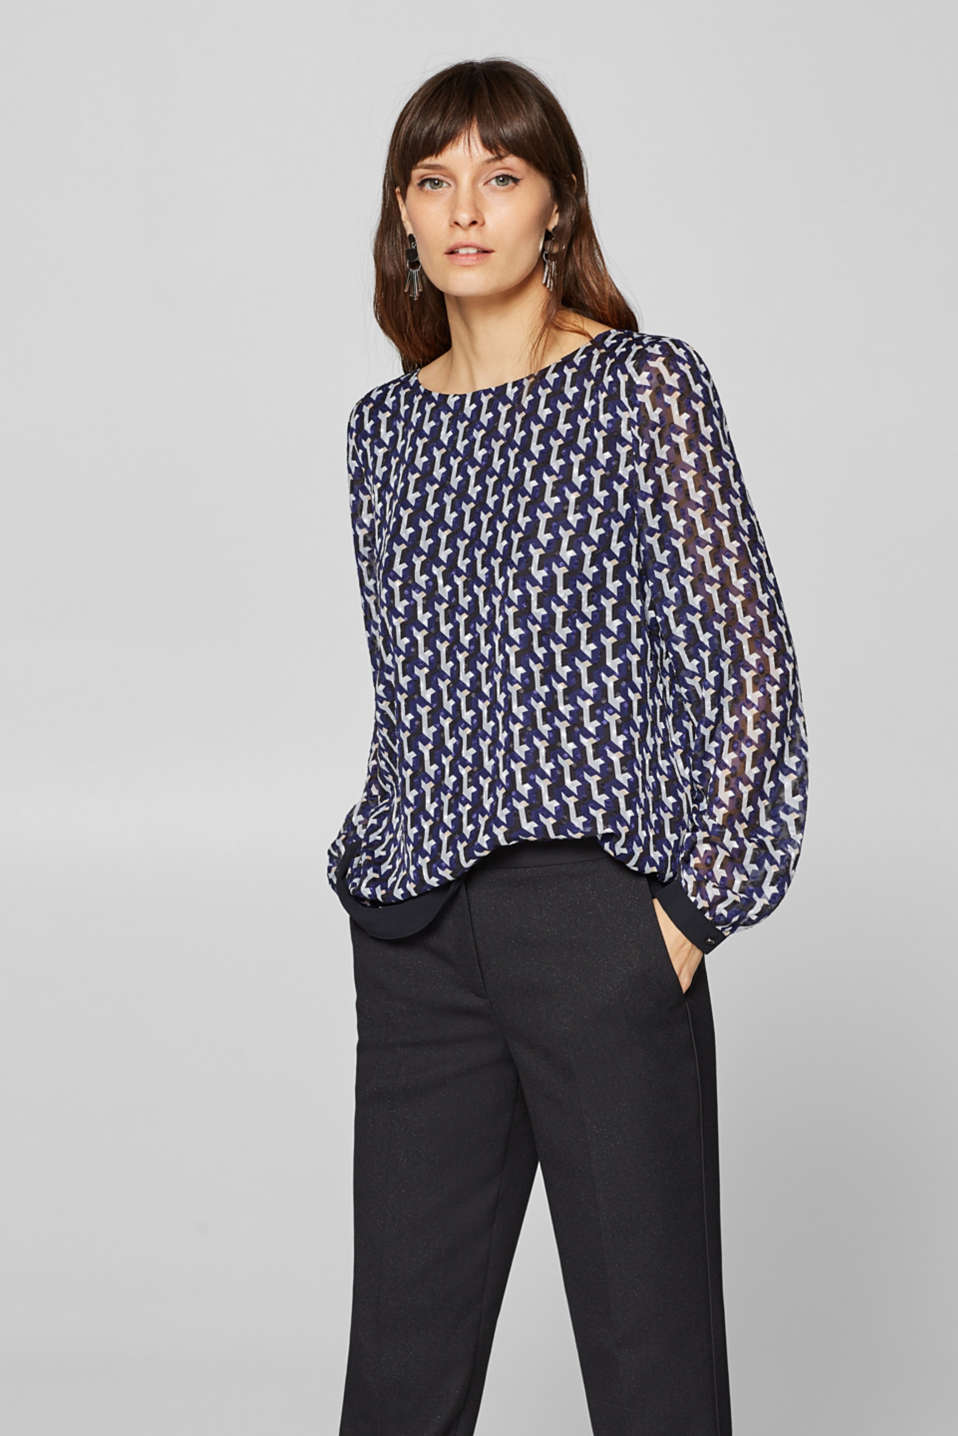 Esprit - Printed chiffon blouse in a layered look